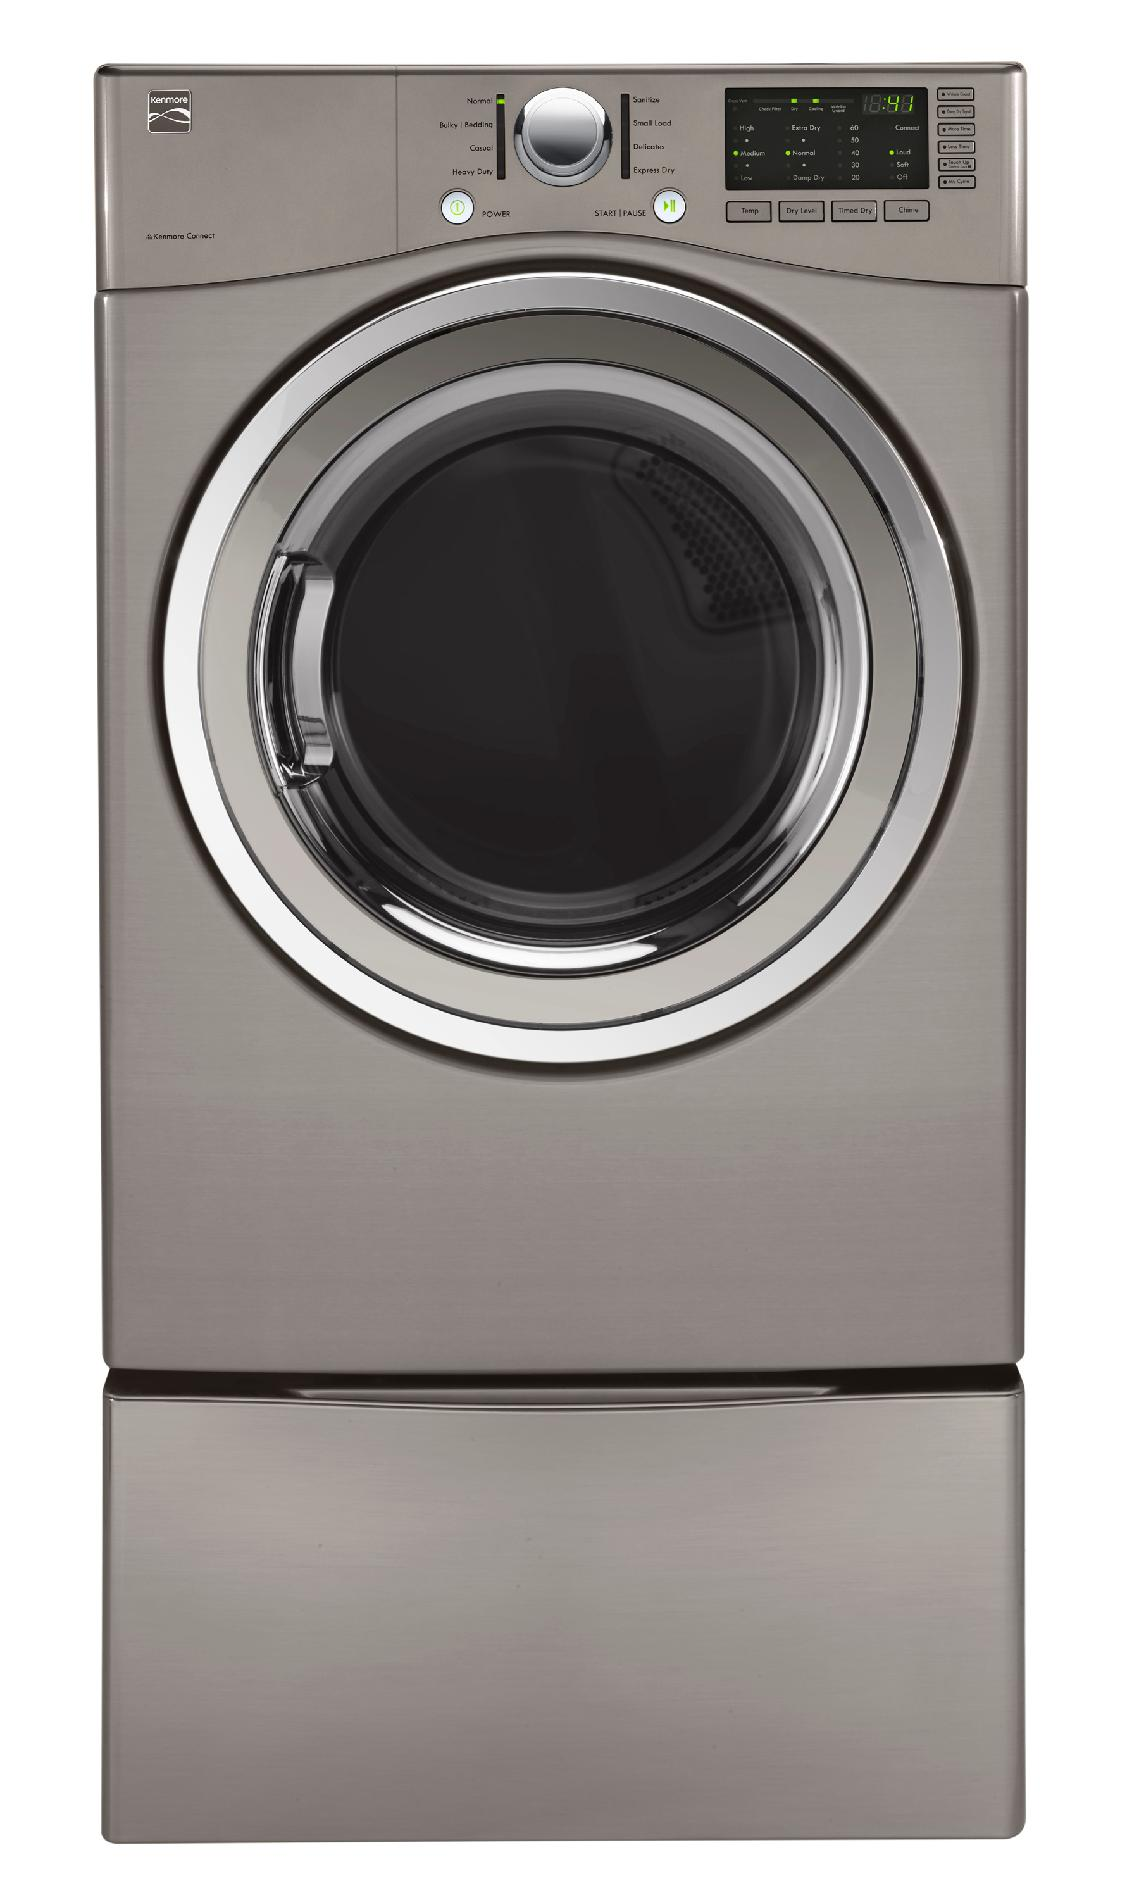 Kenmore 81283 7.3 cu. ft. Electric Dryer  - Metallic